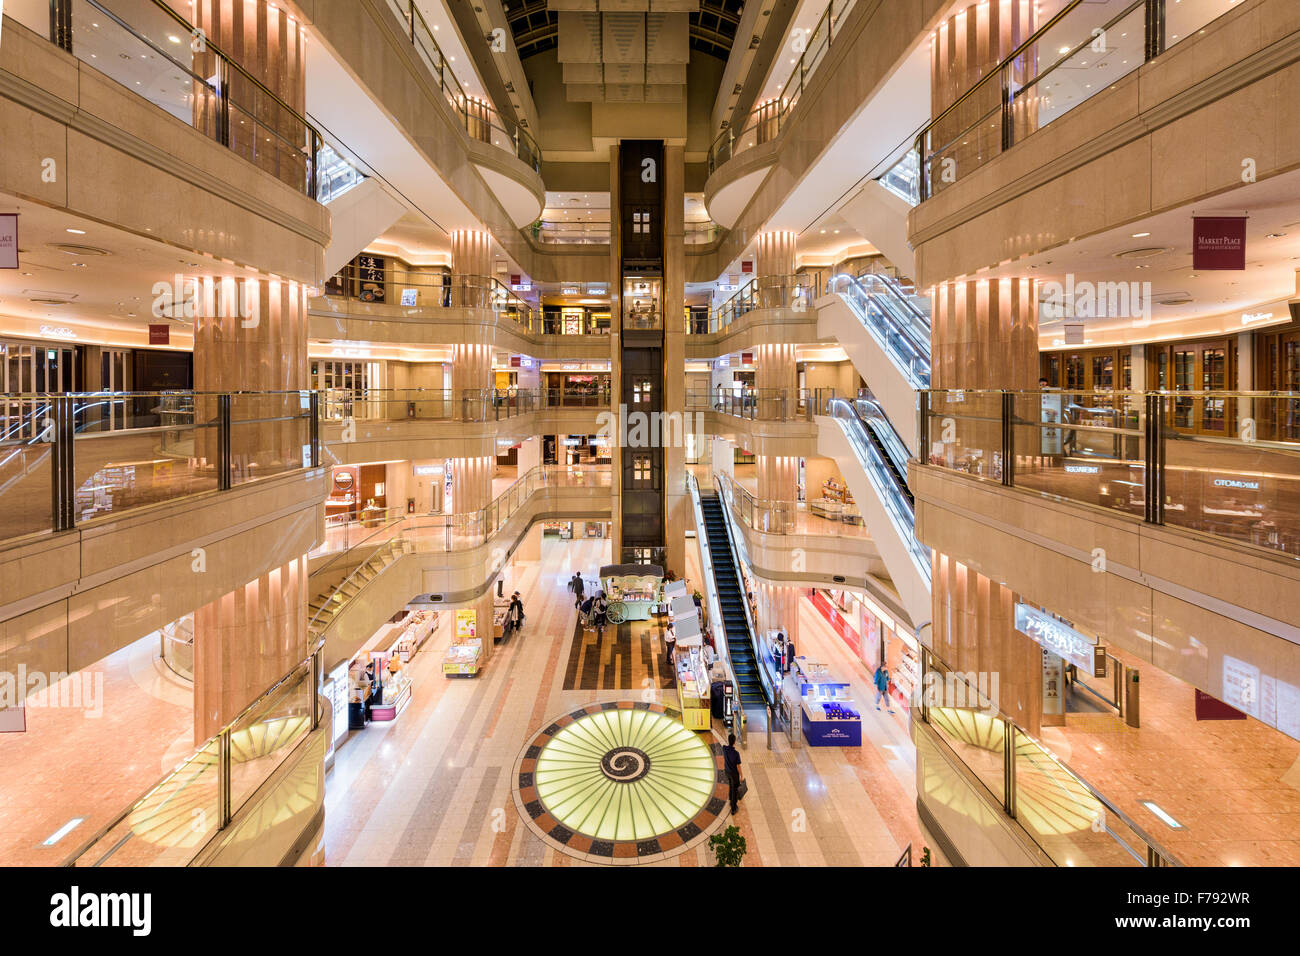 TOKYO, JAPAN - 1. September 2015: Domestic Terminal Mall der Flughafen Tokio-Haneda. Stockbild